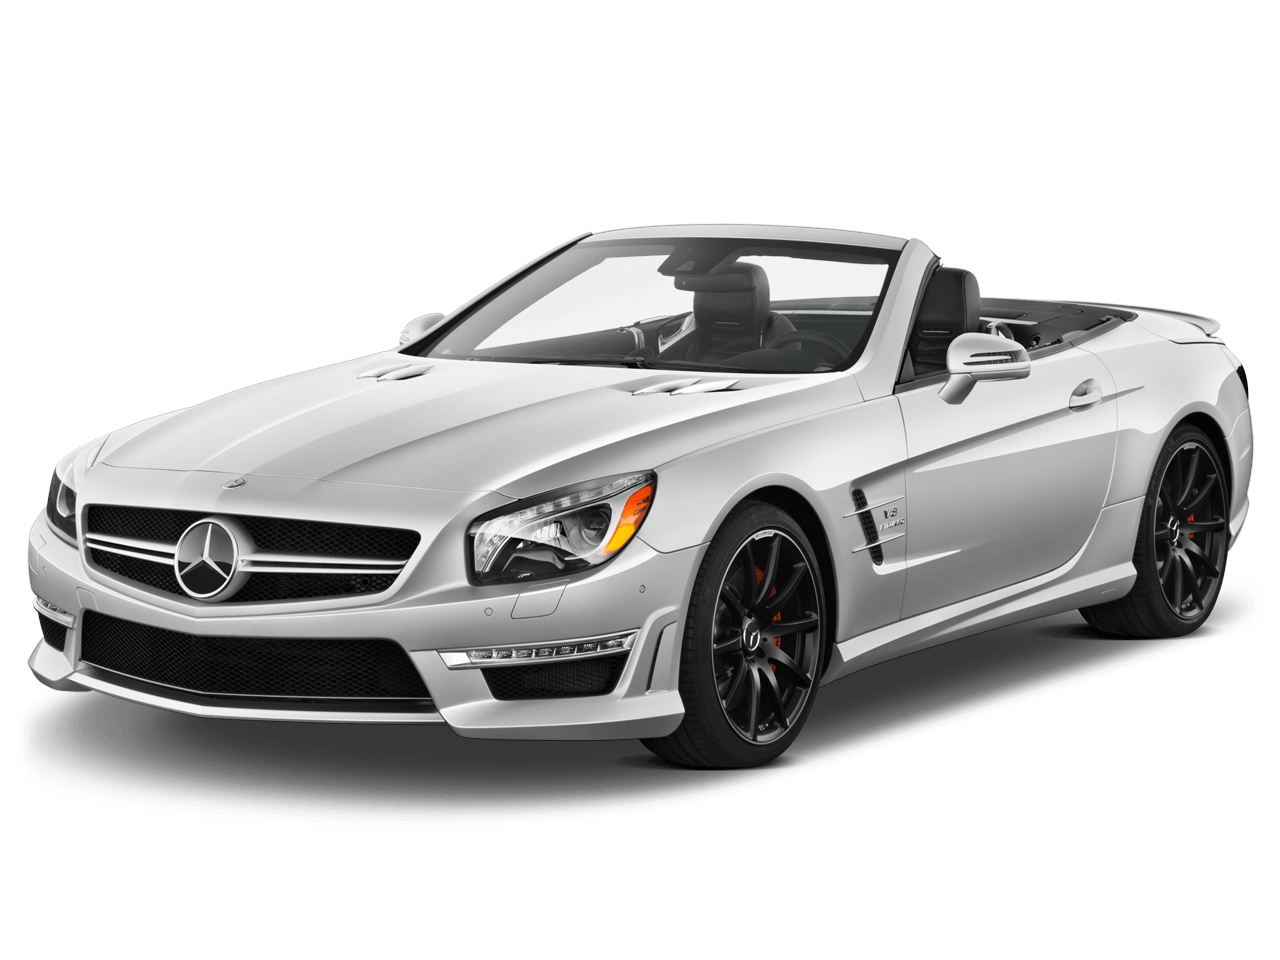 Mercedes Convertible PNG Image